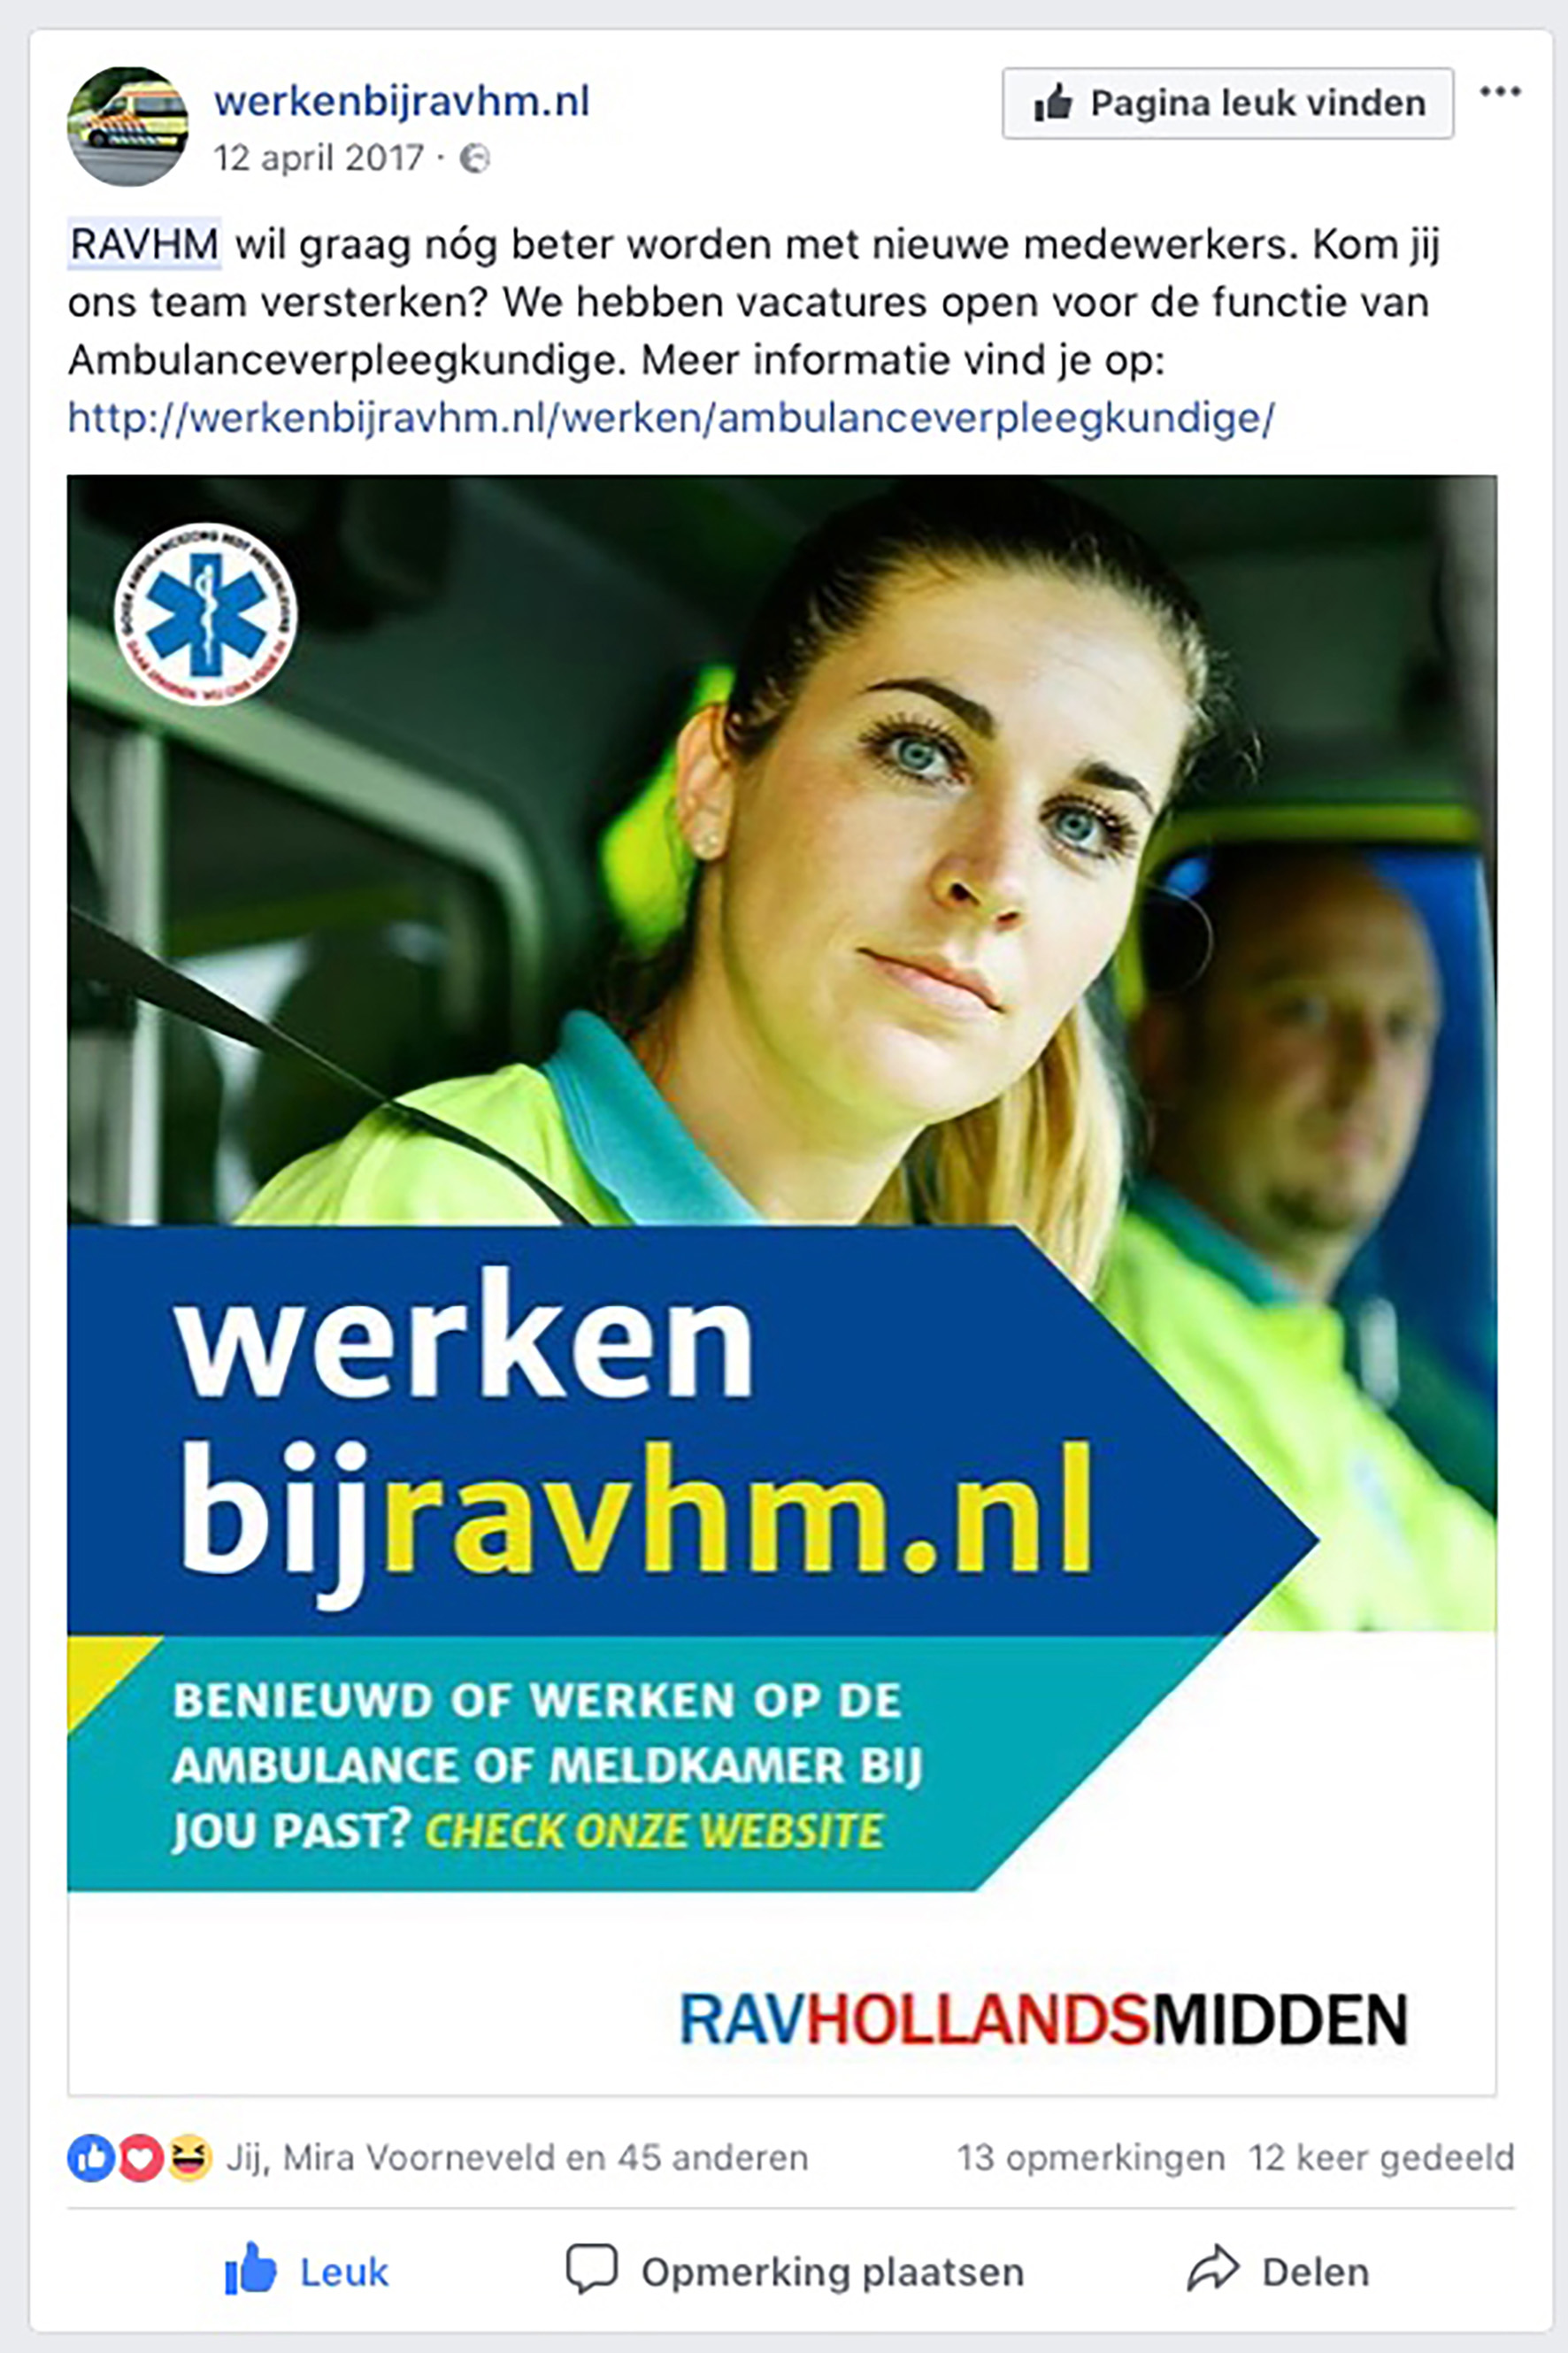 Ambulancedienst RAV HM, campaign recrutement>2018